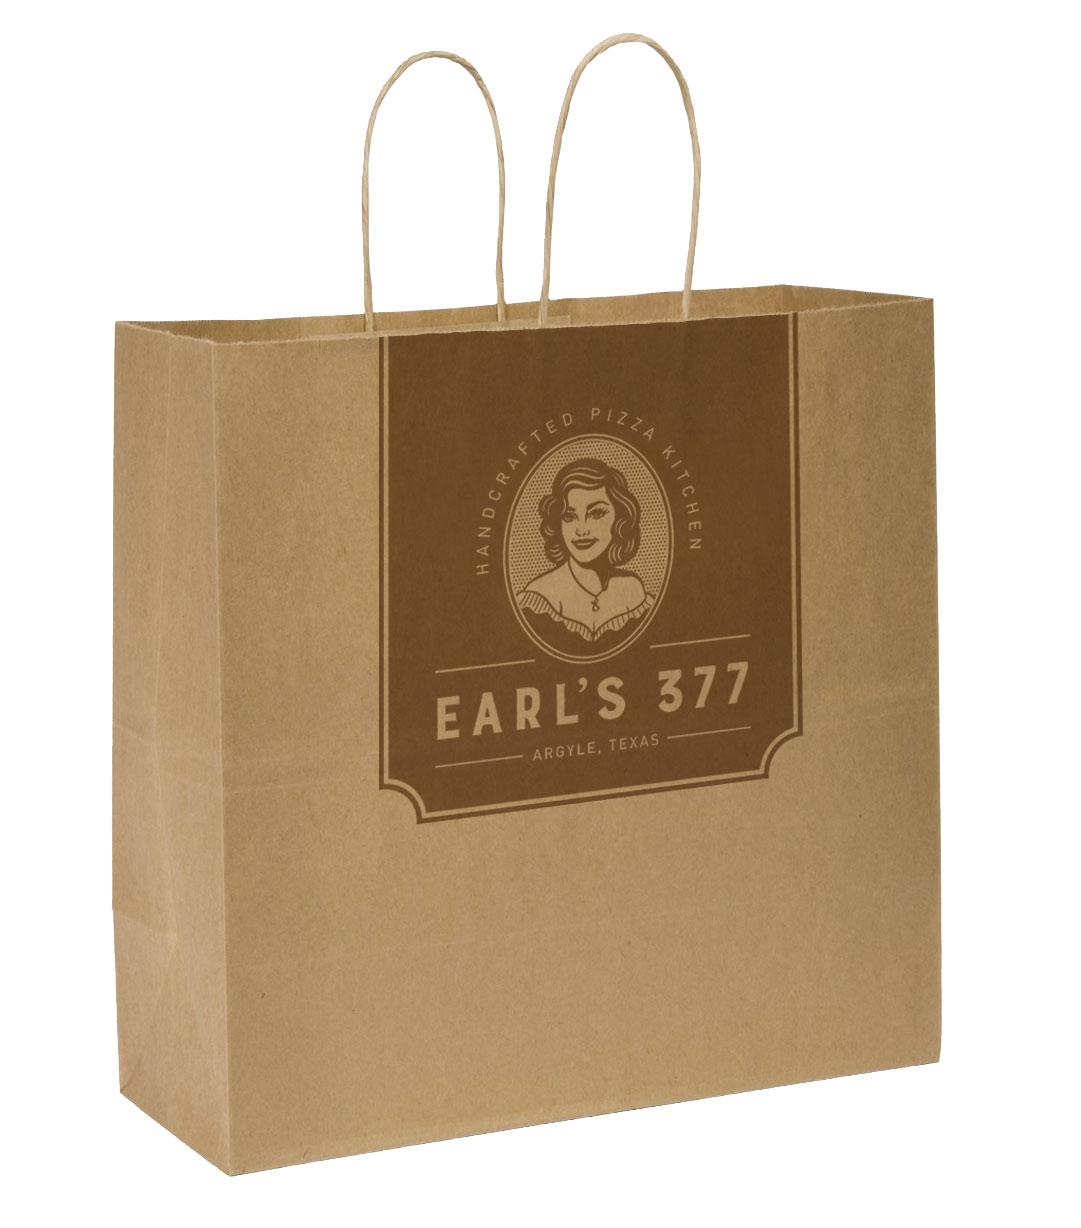 earls377-brownbag-mockup.jpg